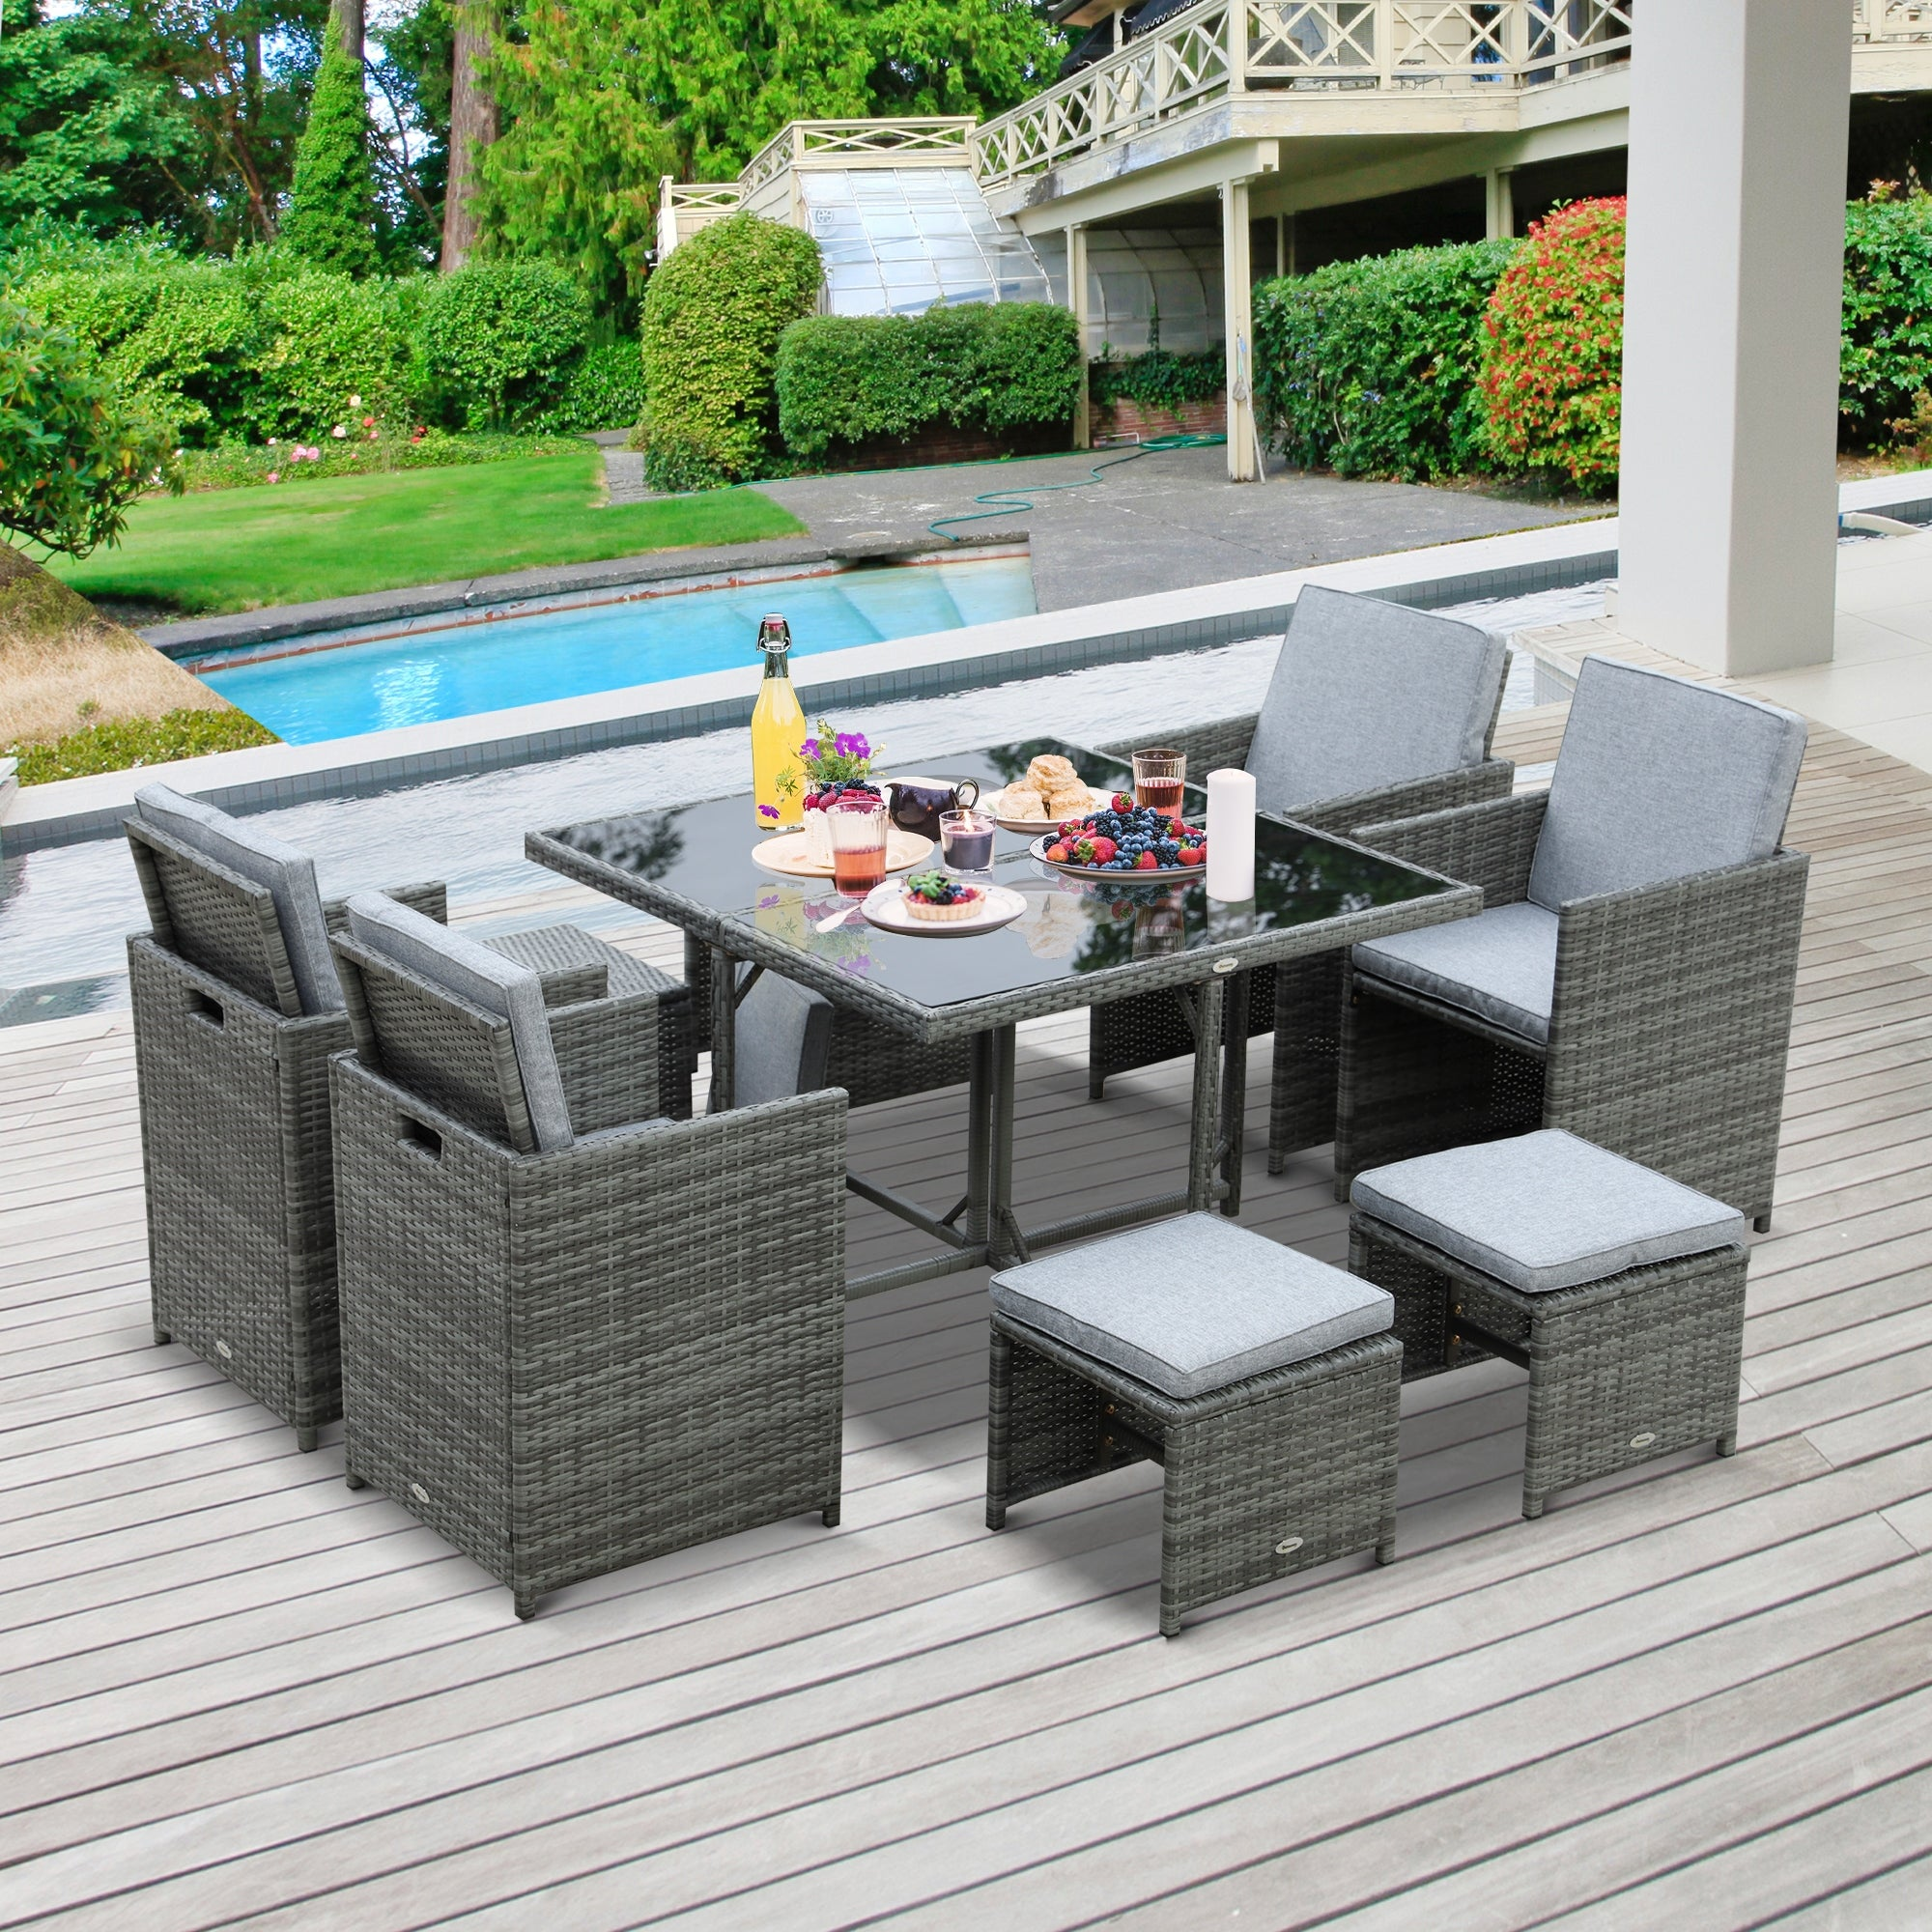 Outsunny 9 Piece Outdoor Rattan Wicker Dining Table And Chairs Furniture Set Space Saving Wicker Chairs W Cushions Overstock 22286604 Grey Mixed Grey